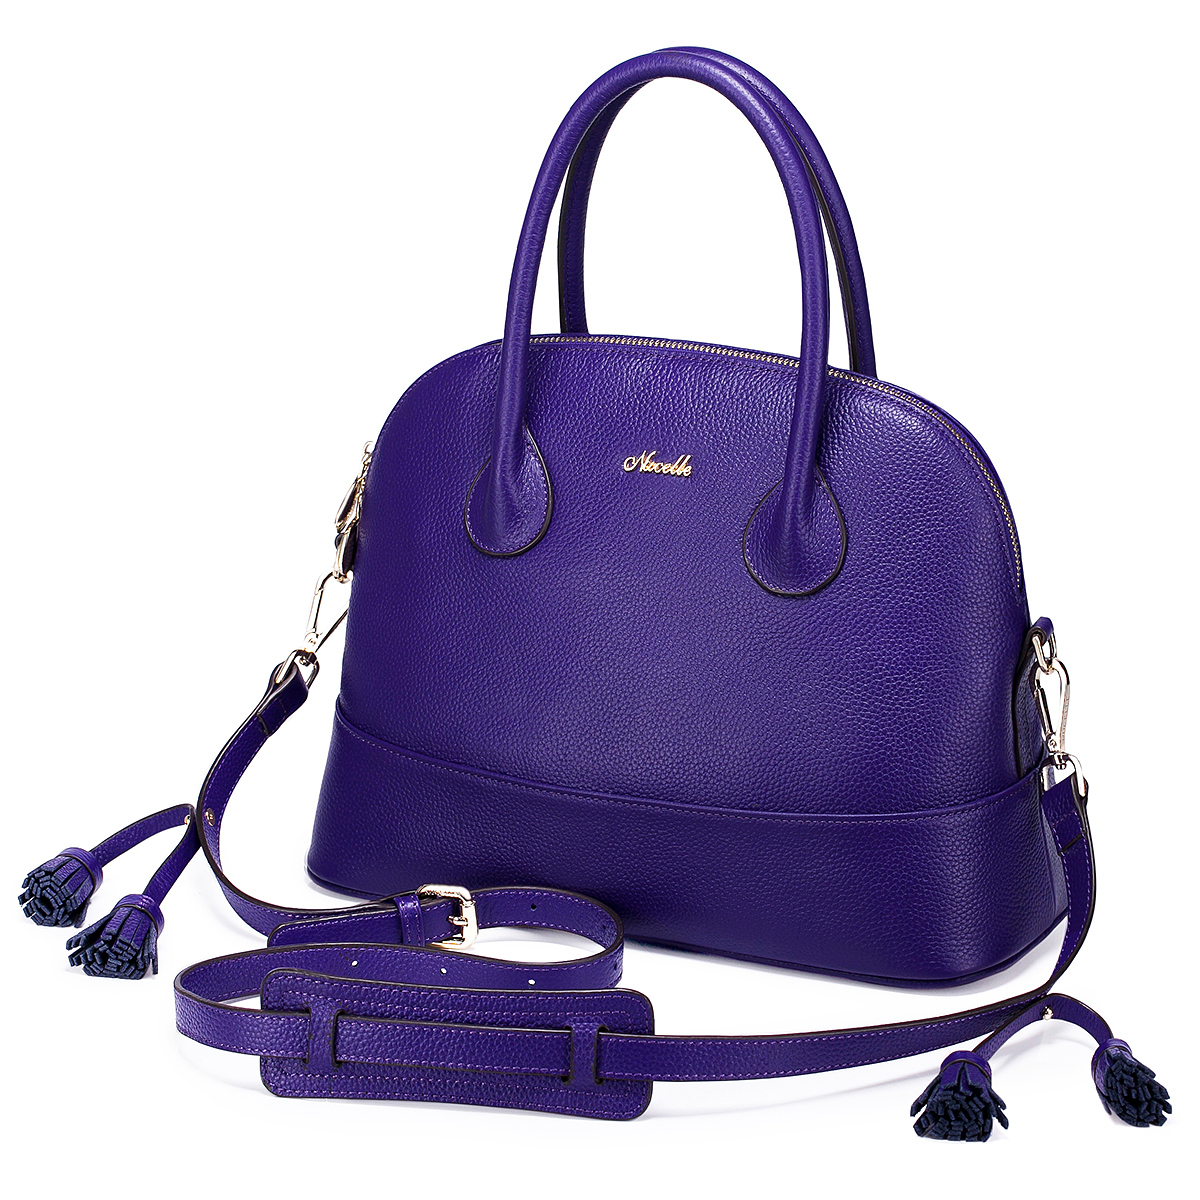 a32e70a7a90d NUCELLE shell simple leather handbag Purple